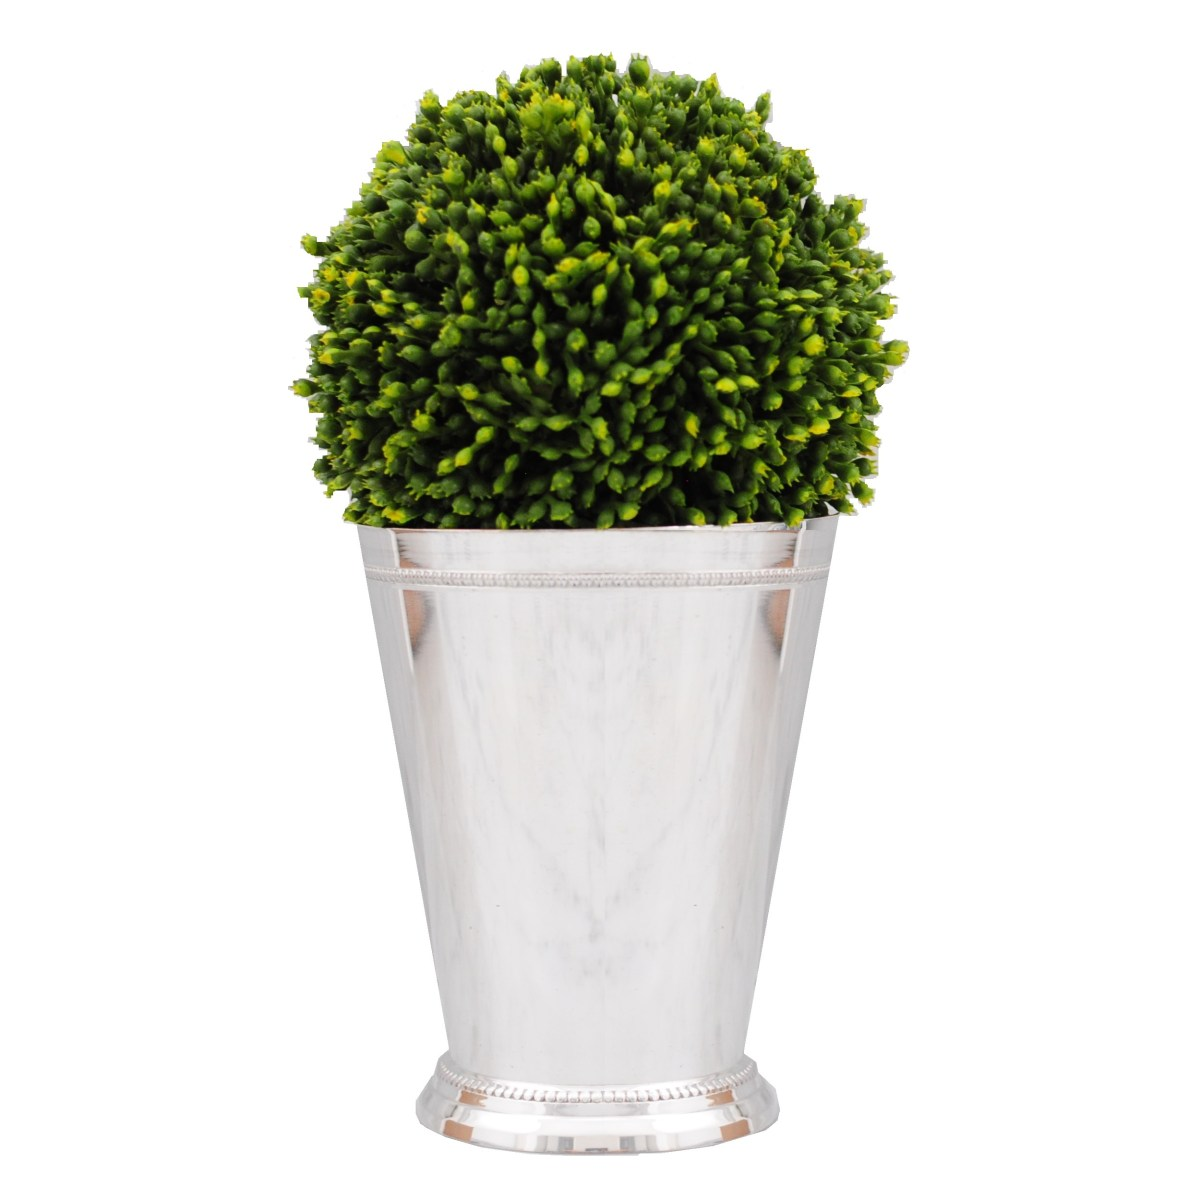 Mint julep cup vase with topiary veronica bradley interiors mint julep cup reviewsmspy